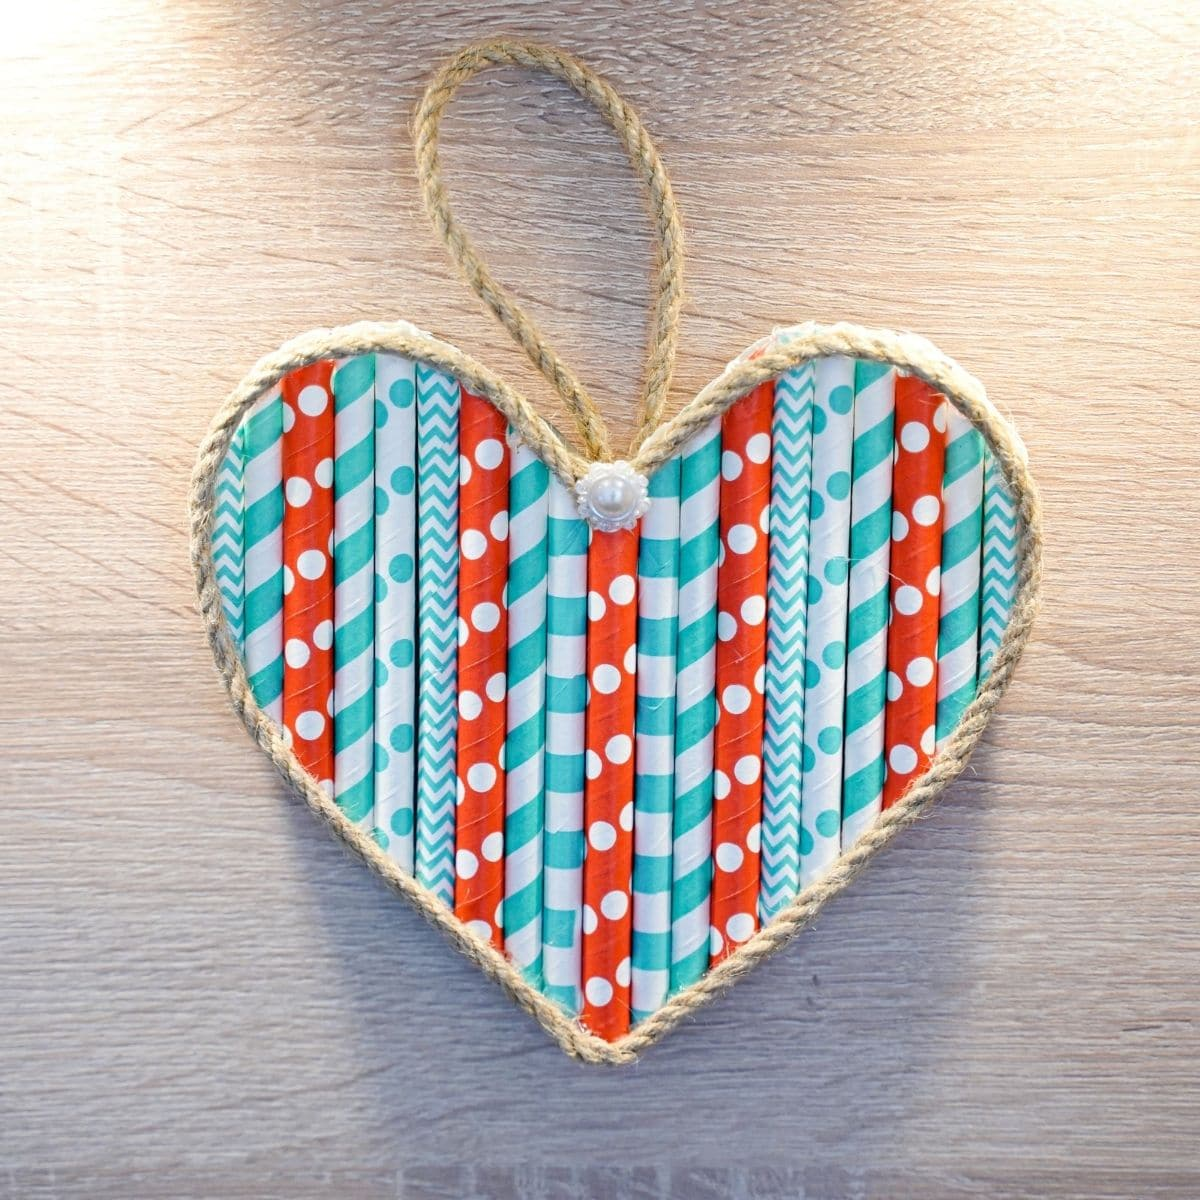 Paper straw heart on wall